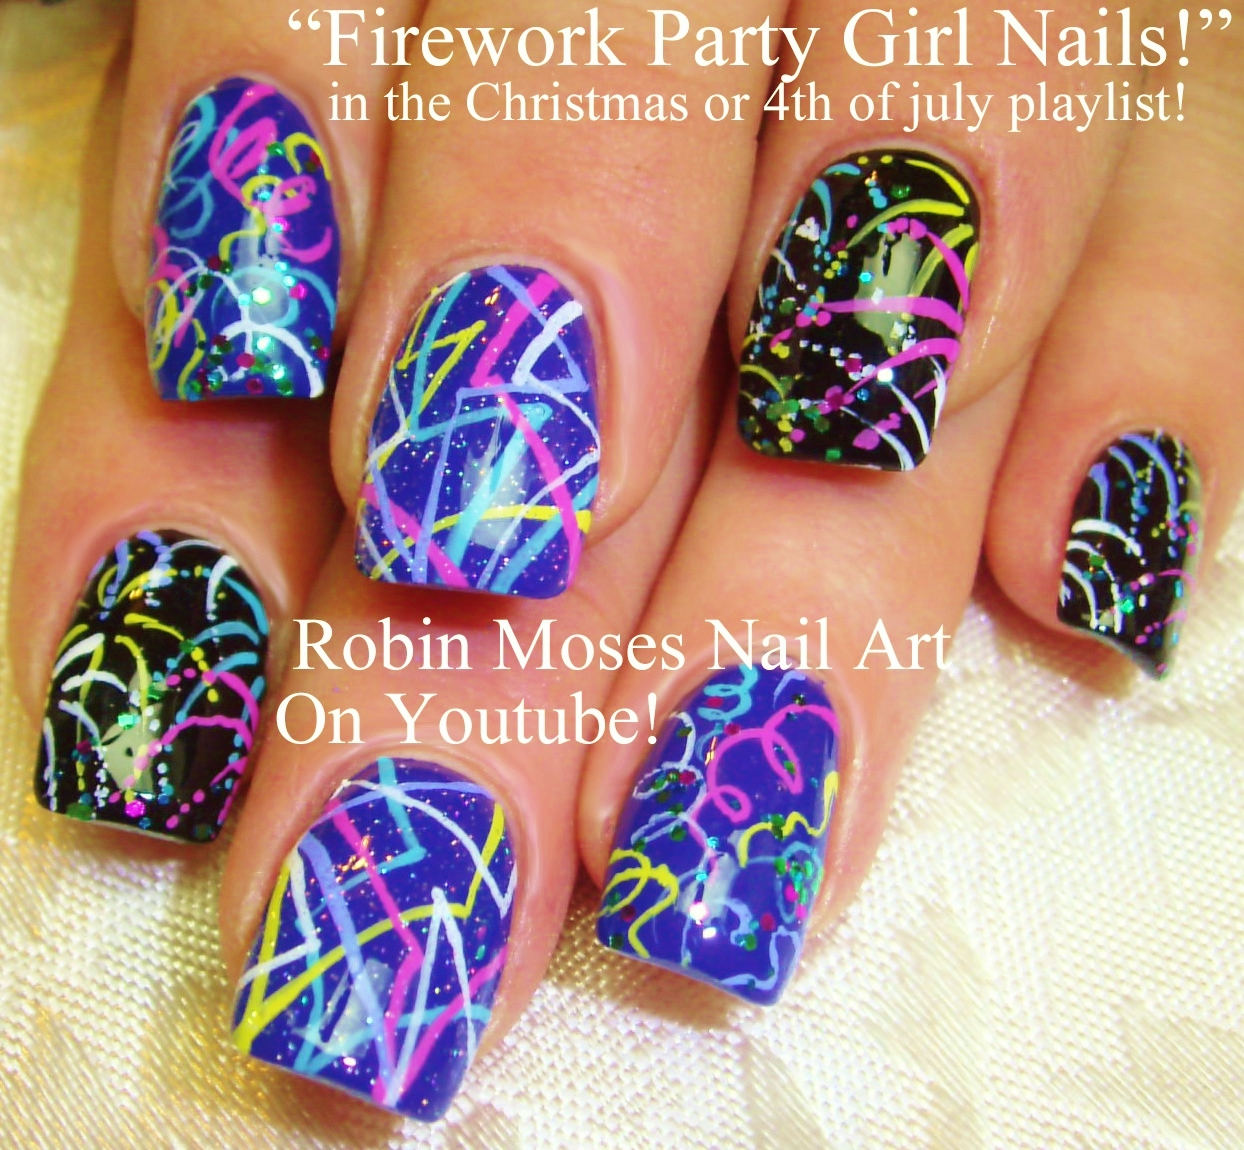 Robin moses nail art romantic firework nail art design tutorial 4th of july nail art playlist diy easy independence day nail art tutorials fourth of july nails prinsesfo Images